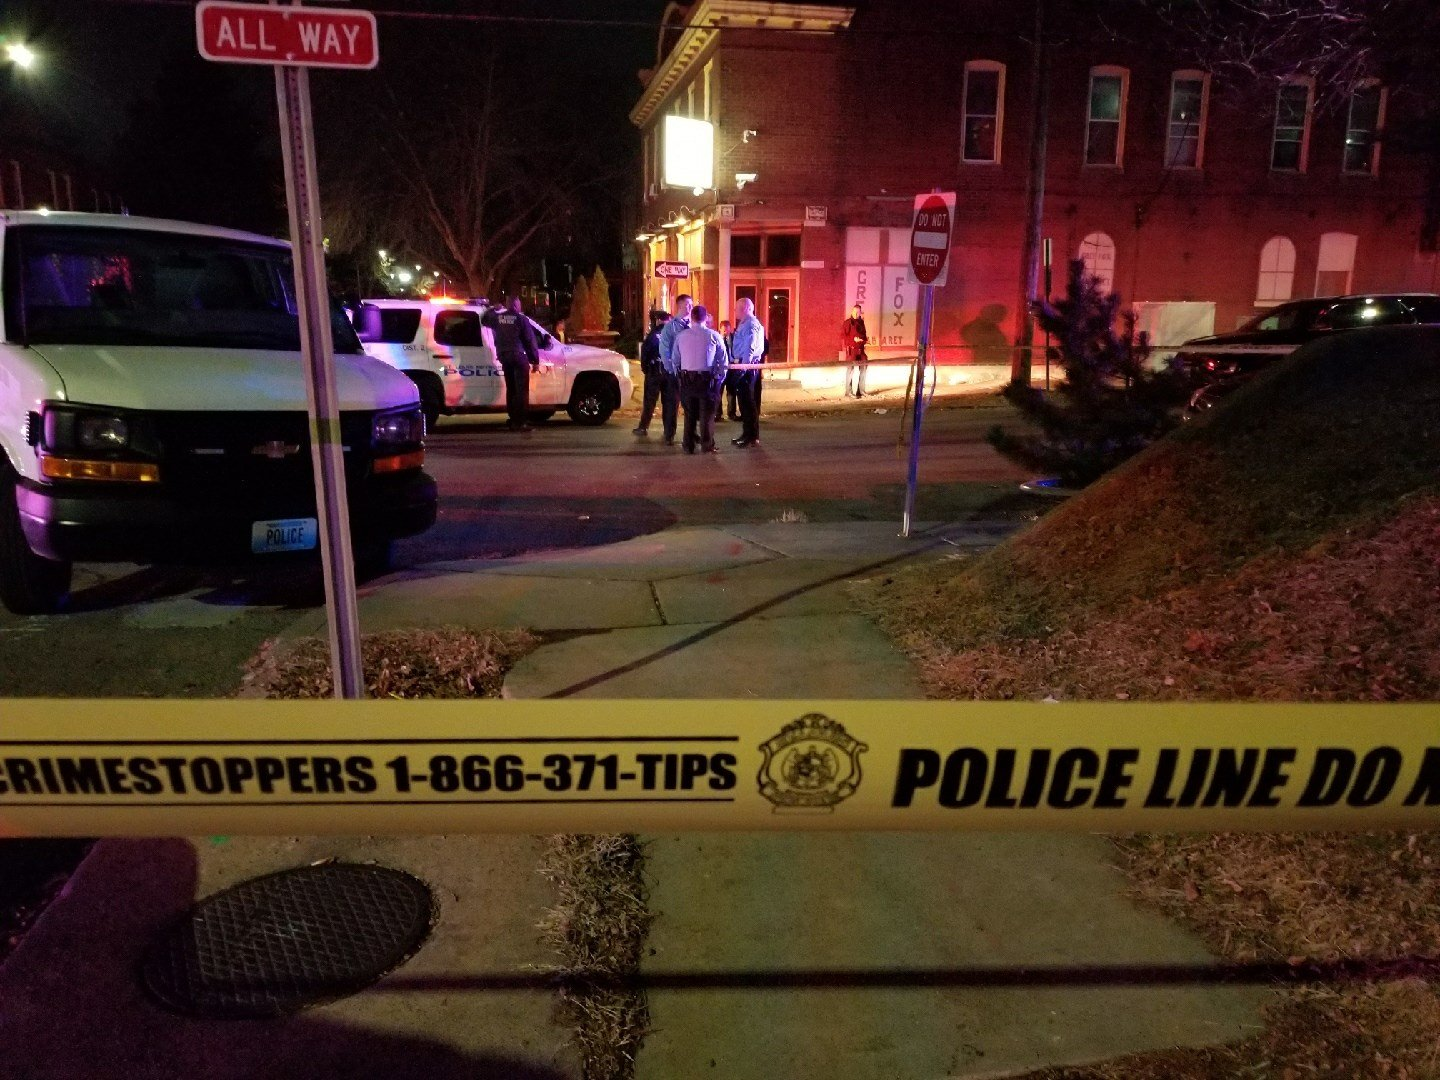 Police investigating officer-involved shooting at Grey Fox Cabaret in South St. Louis.